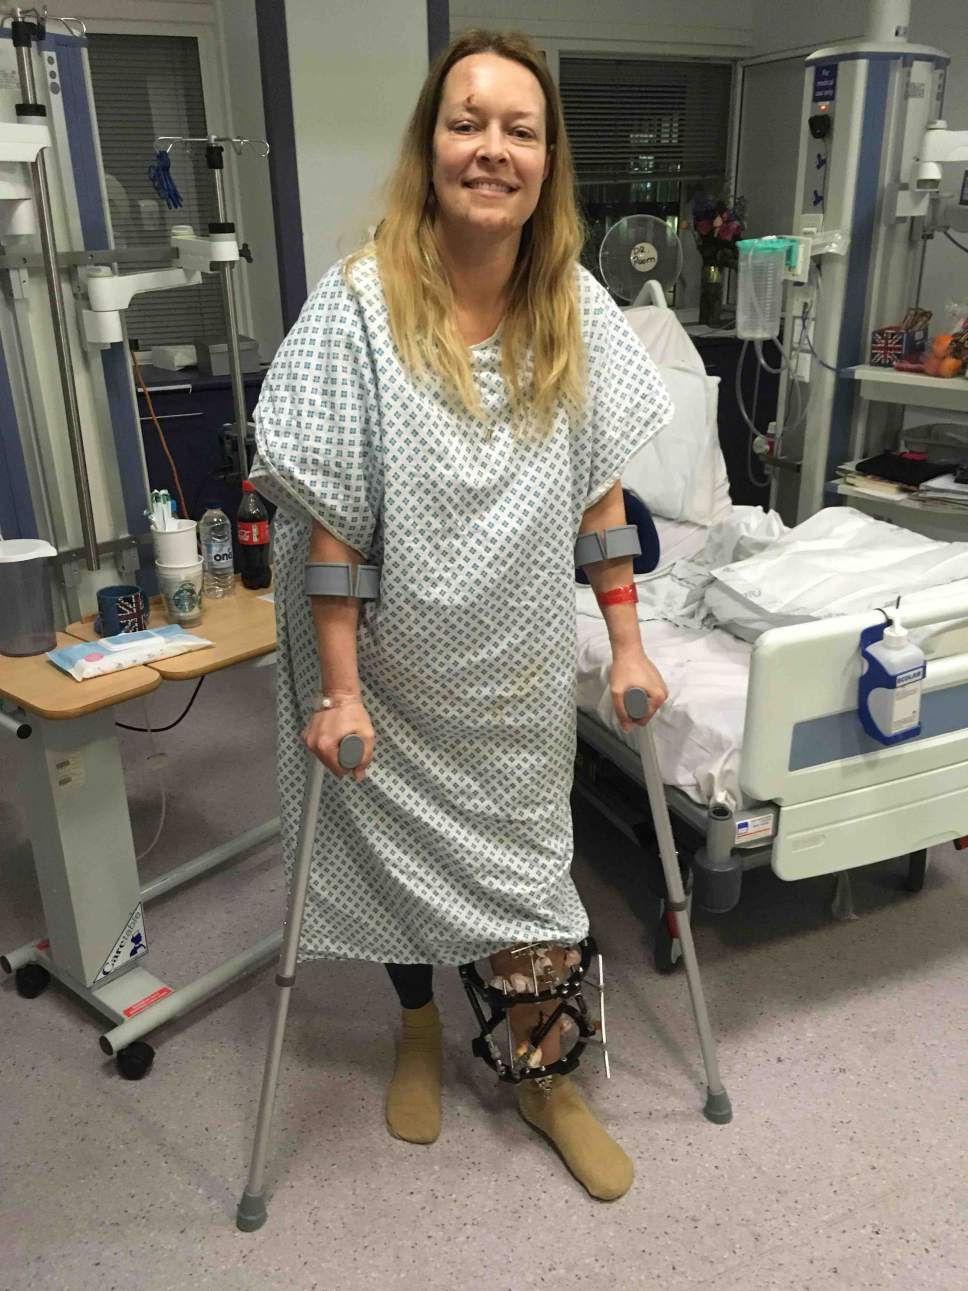 Courtesy photo Melissa Payne Cochran recovers from injuries sustained in the London attack.